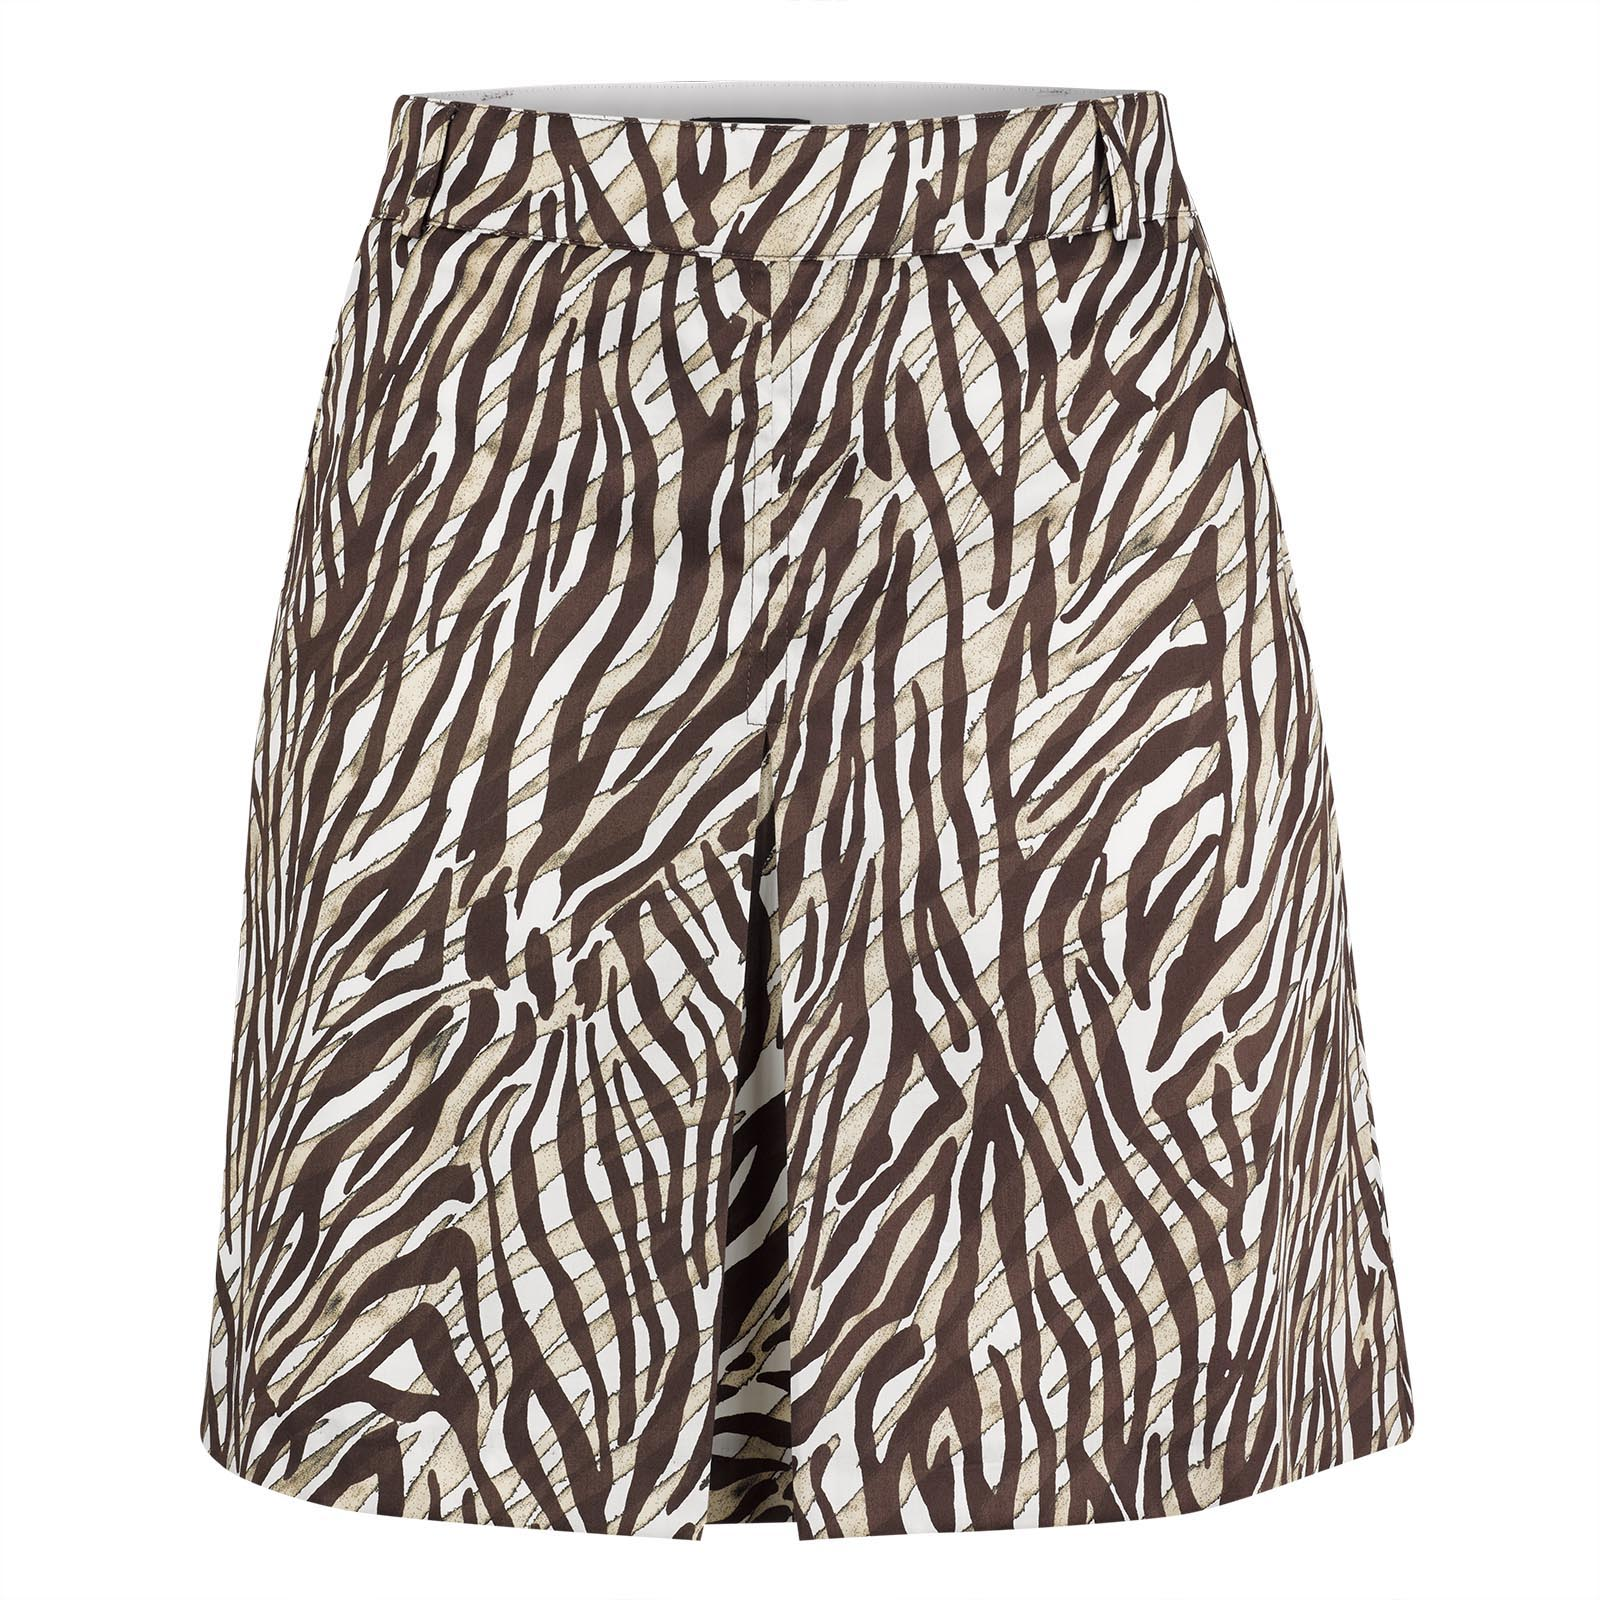 African Safari print ladies' golf skort with integrated shorts